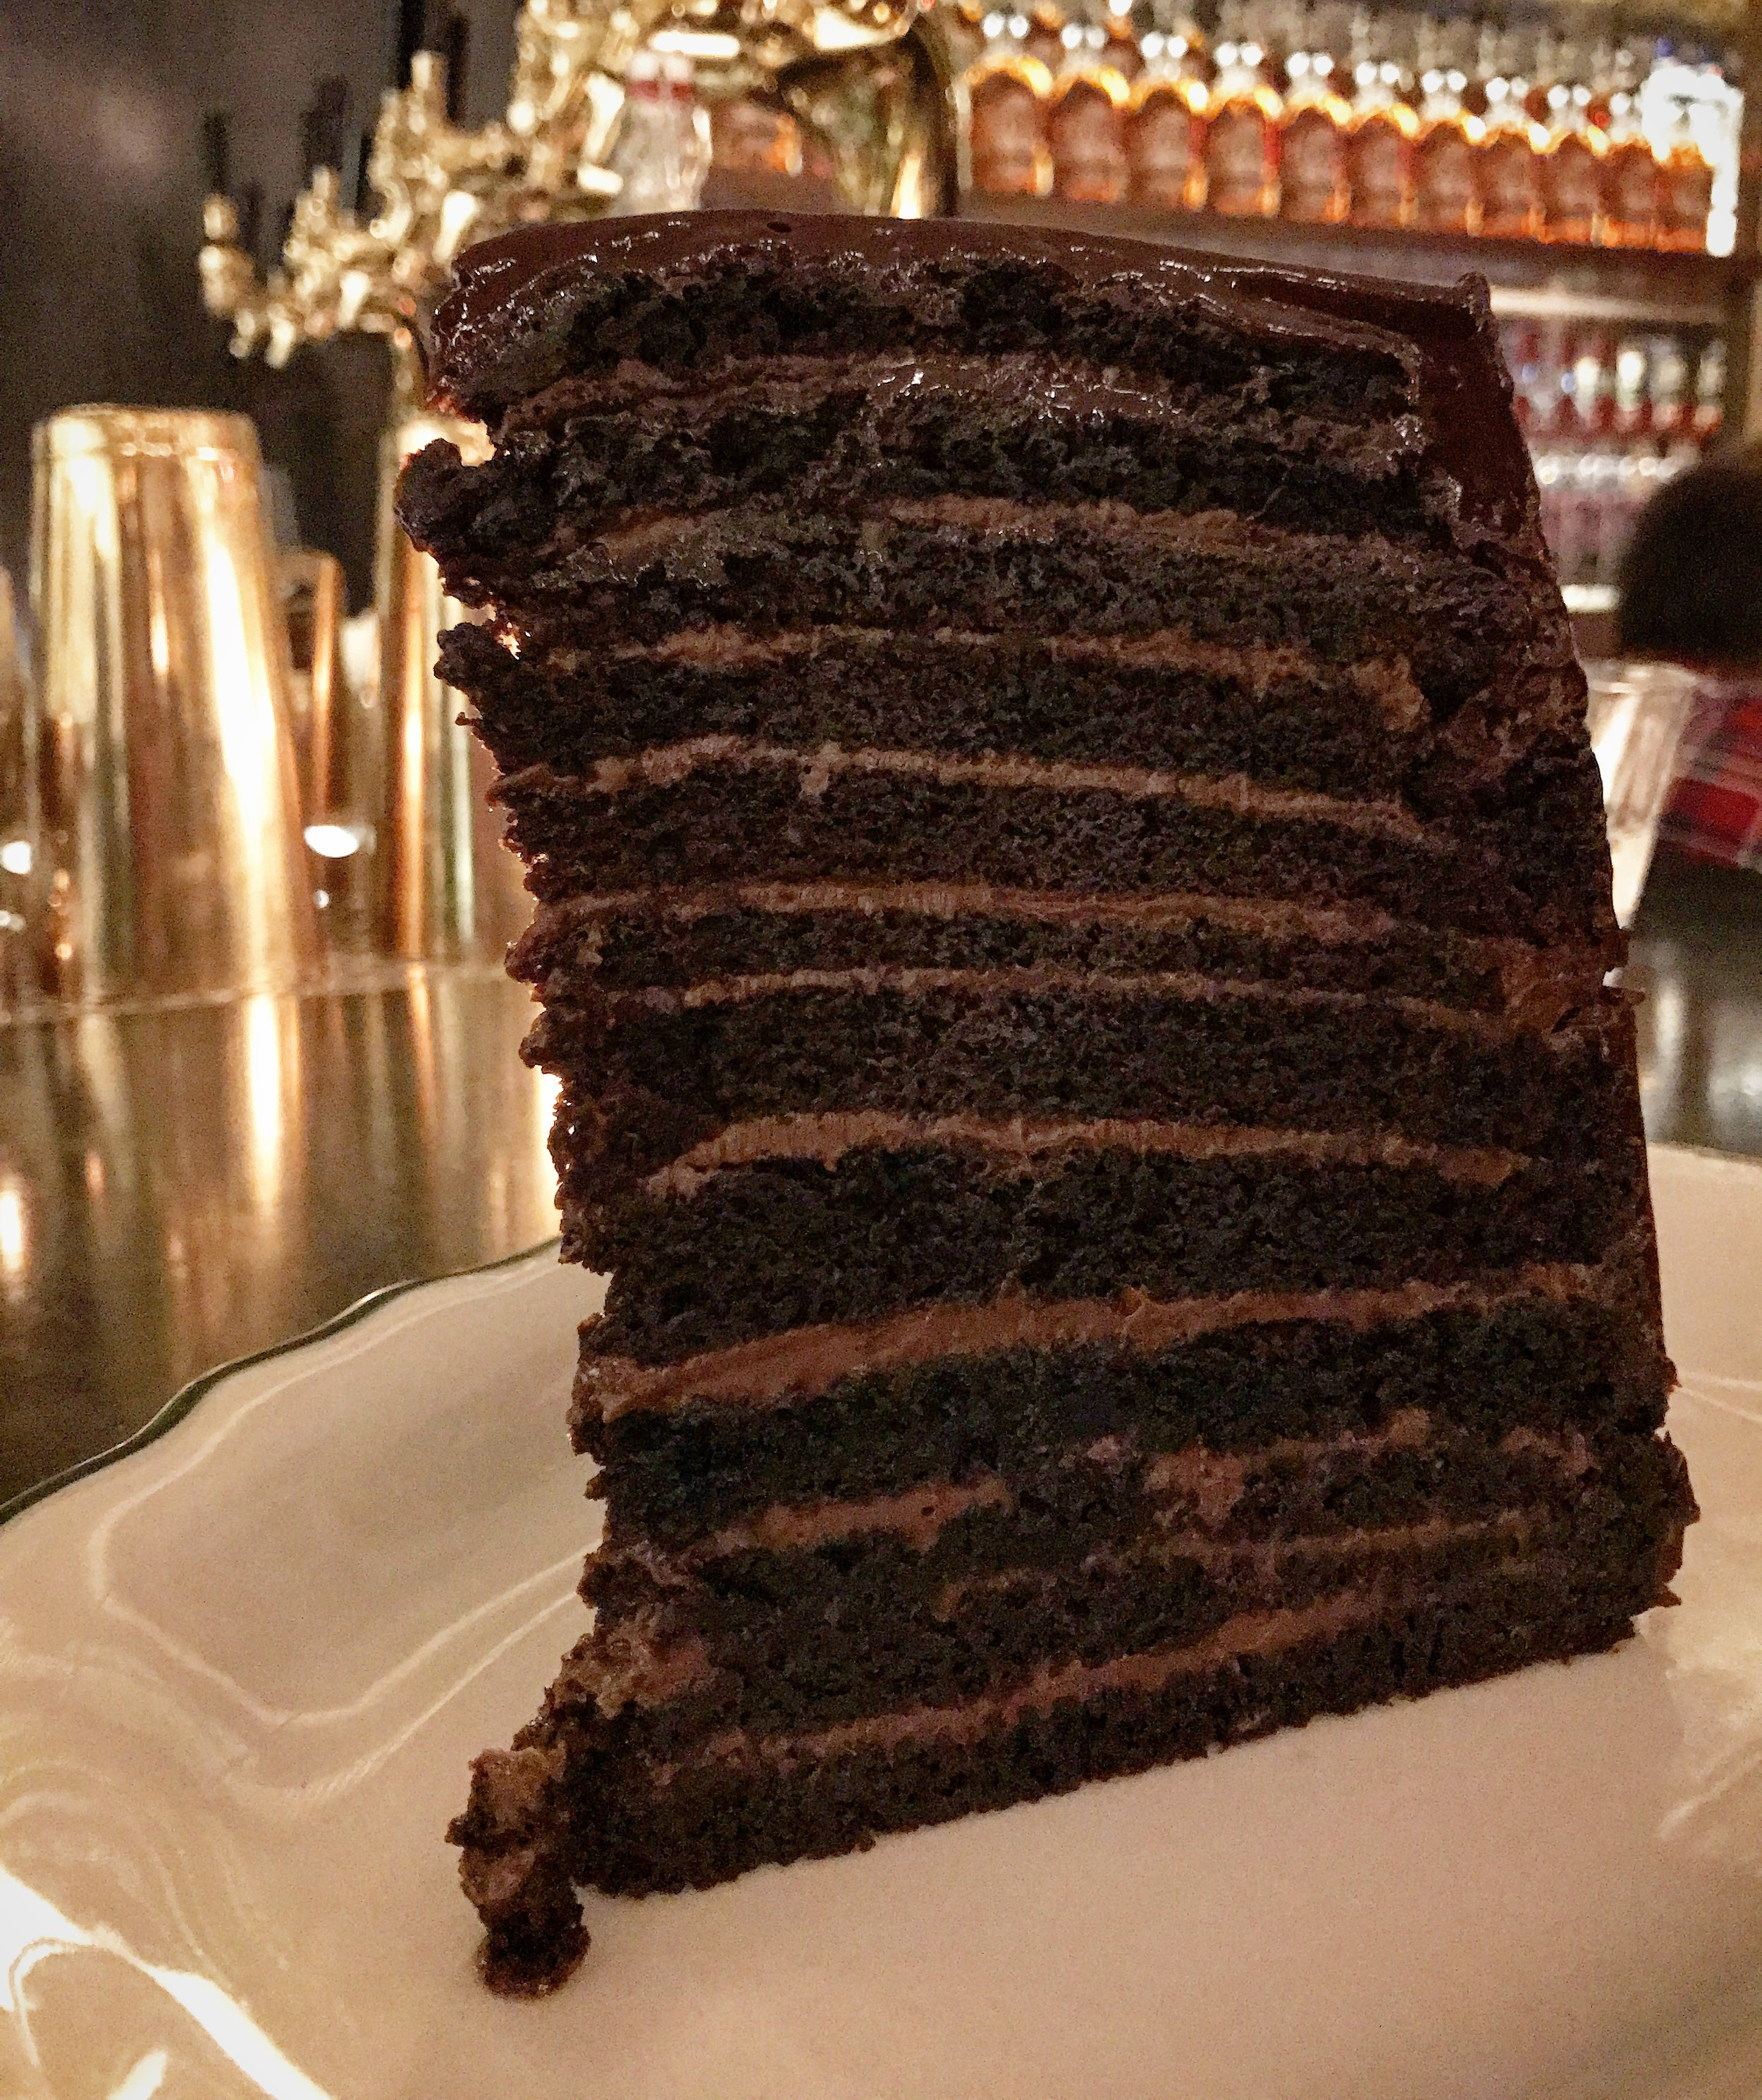 Decadent 12 layer chocolate cake at Maison Pickle